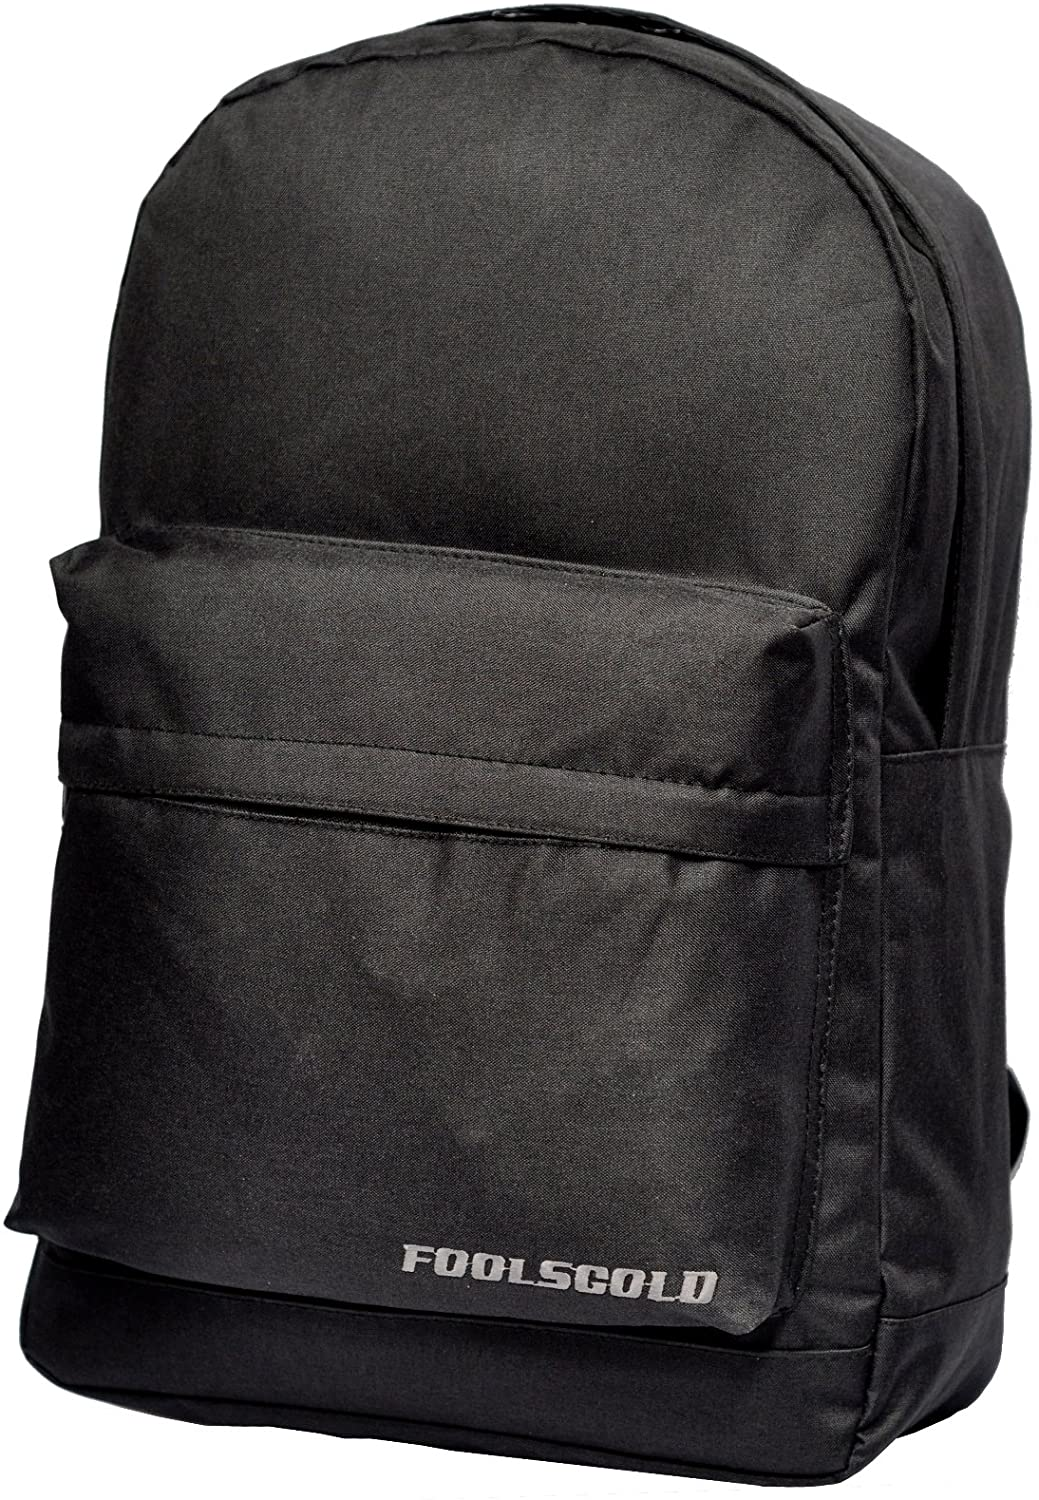 foolsGold Pro Strong Notebook Laptop Backpack Bag up to 15.6 inch in Dark Grey